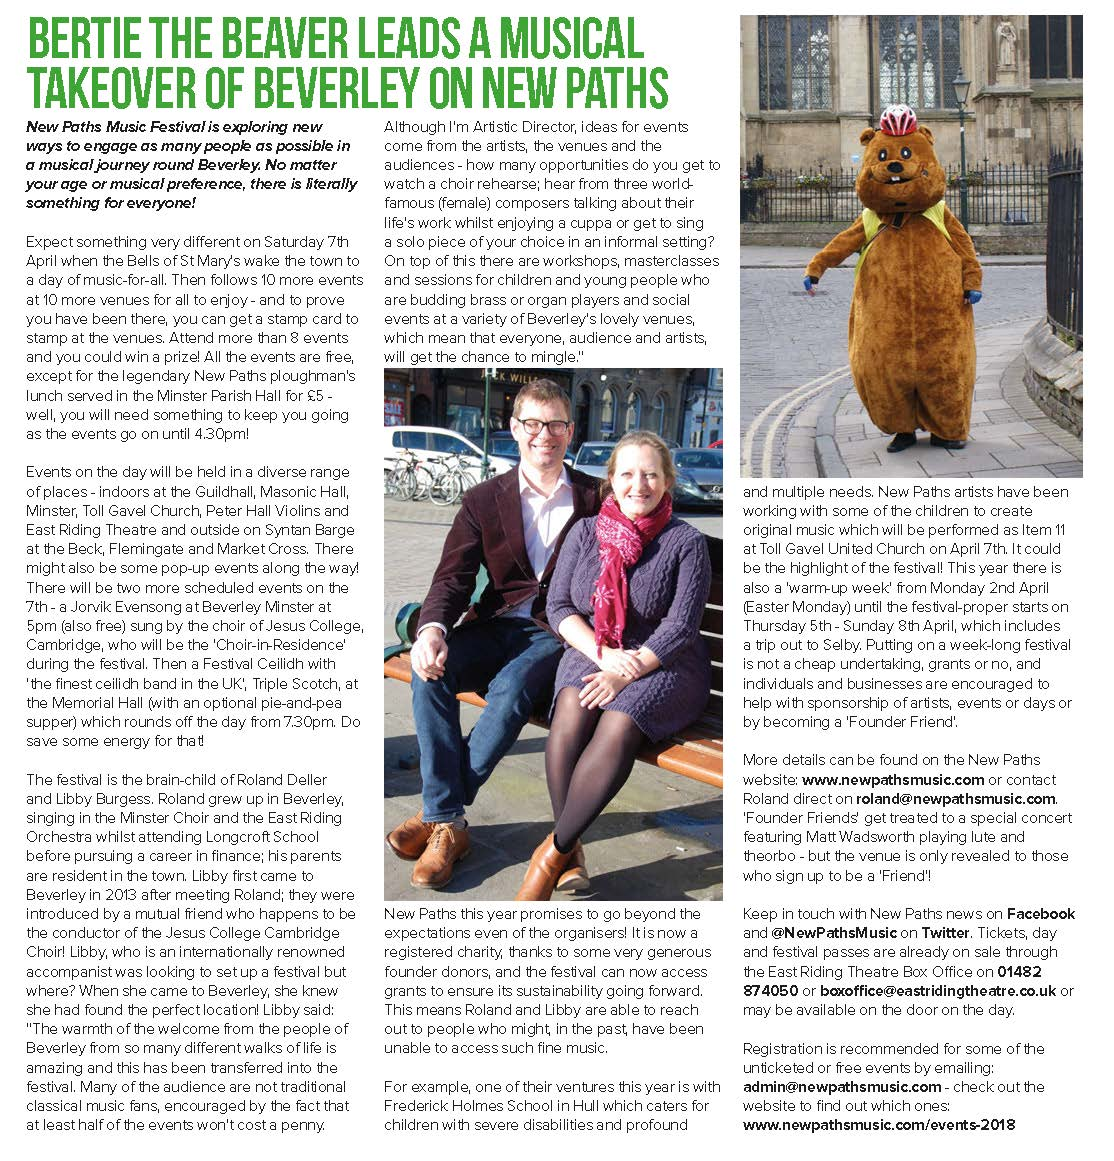 Just Beverley Issue 38 (March 2018) Page 12 - New Paths